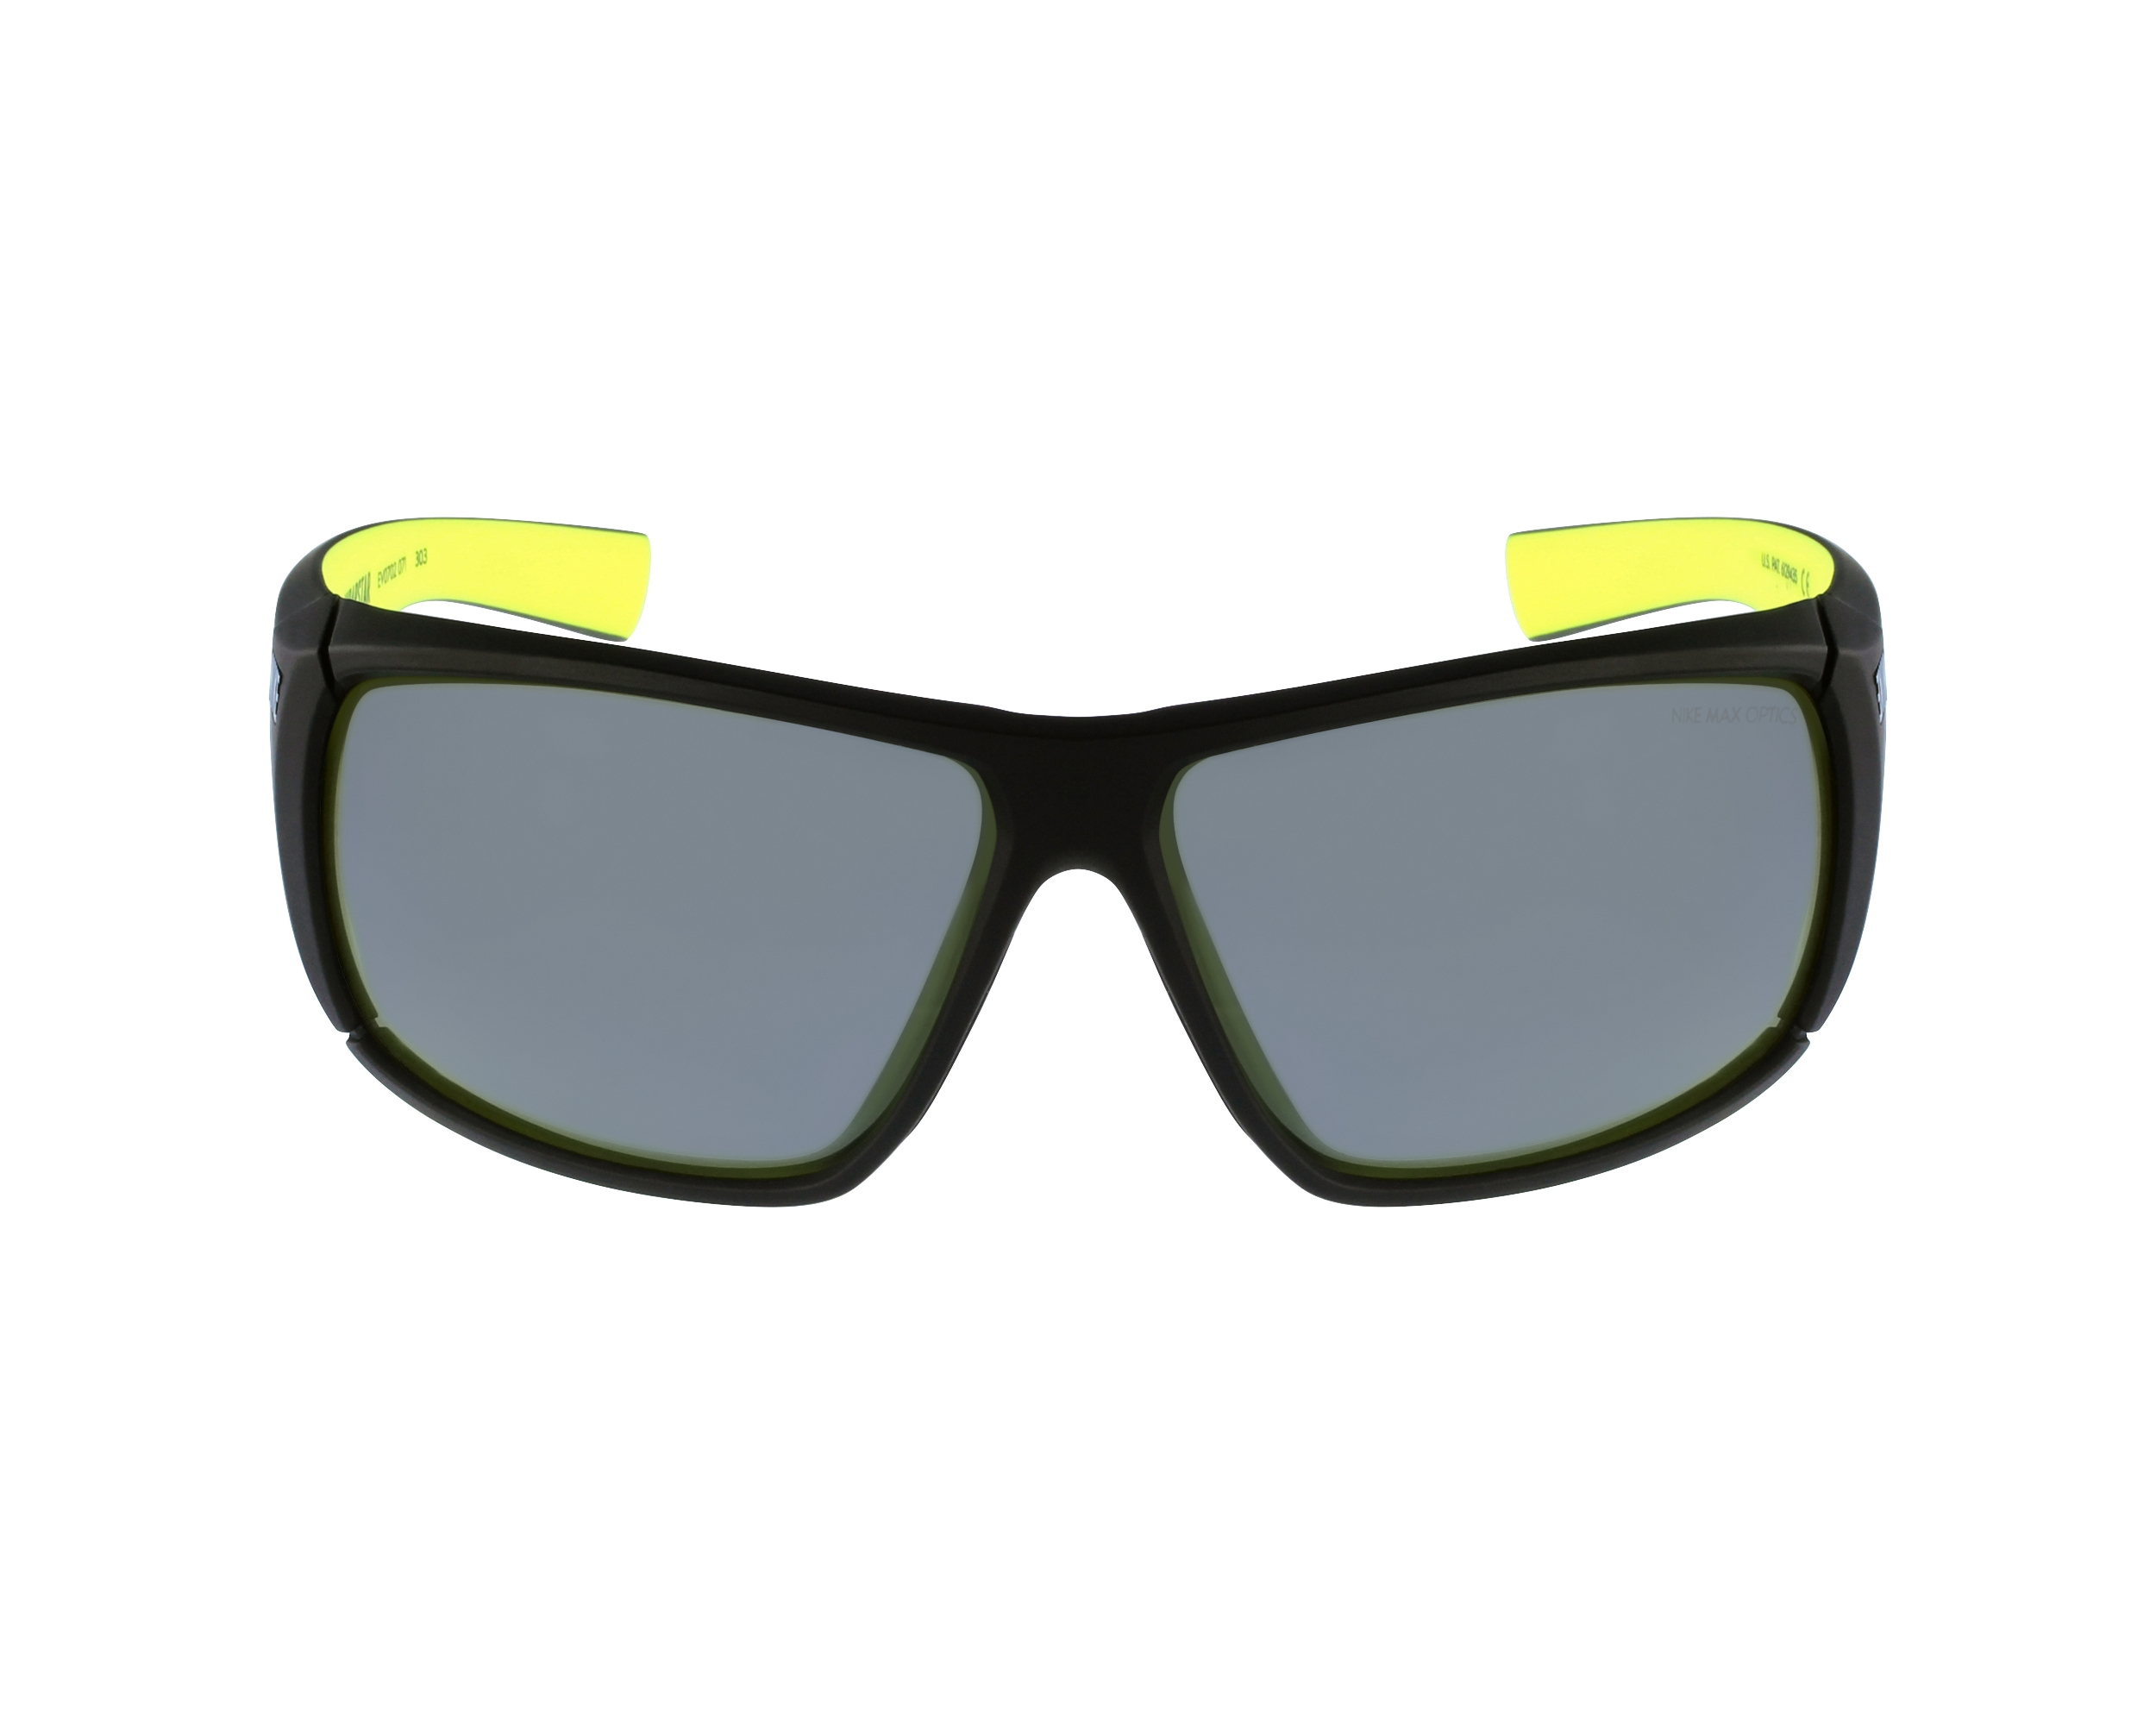 nike sunglasses womens yellow